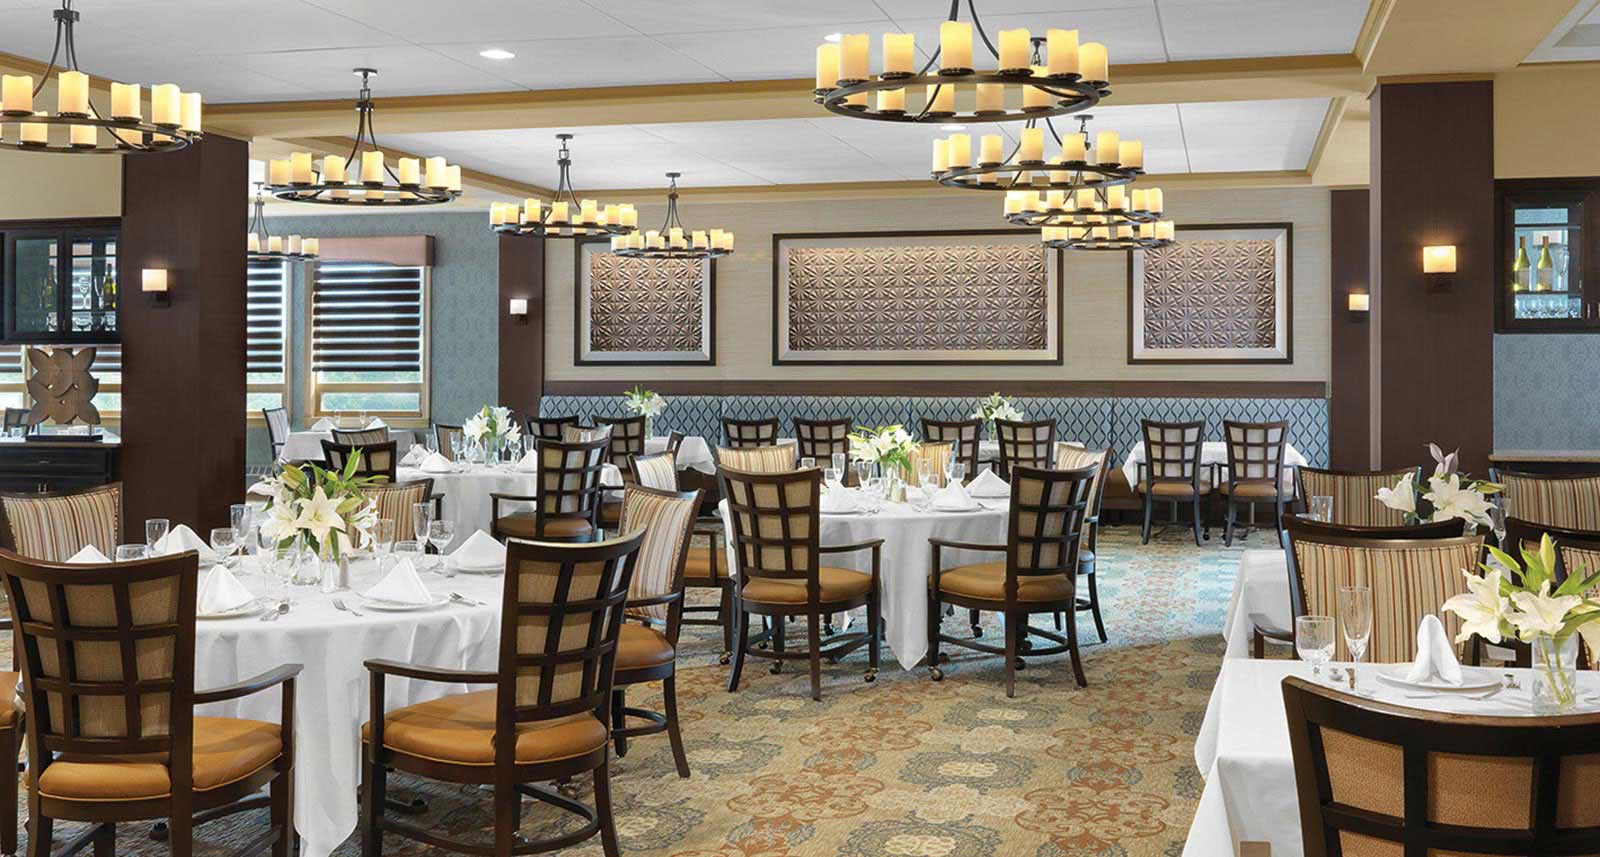 The dining room at Kingswood Senior Living Located in Kansas City, MO.